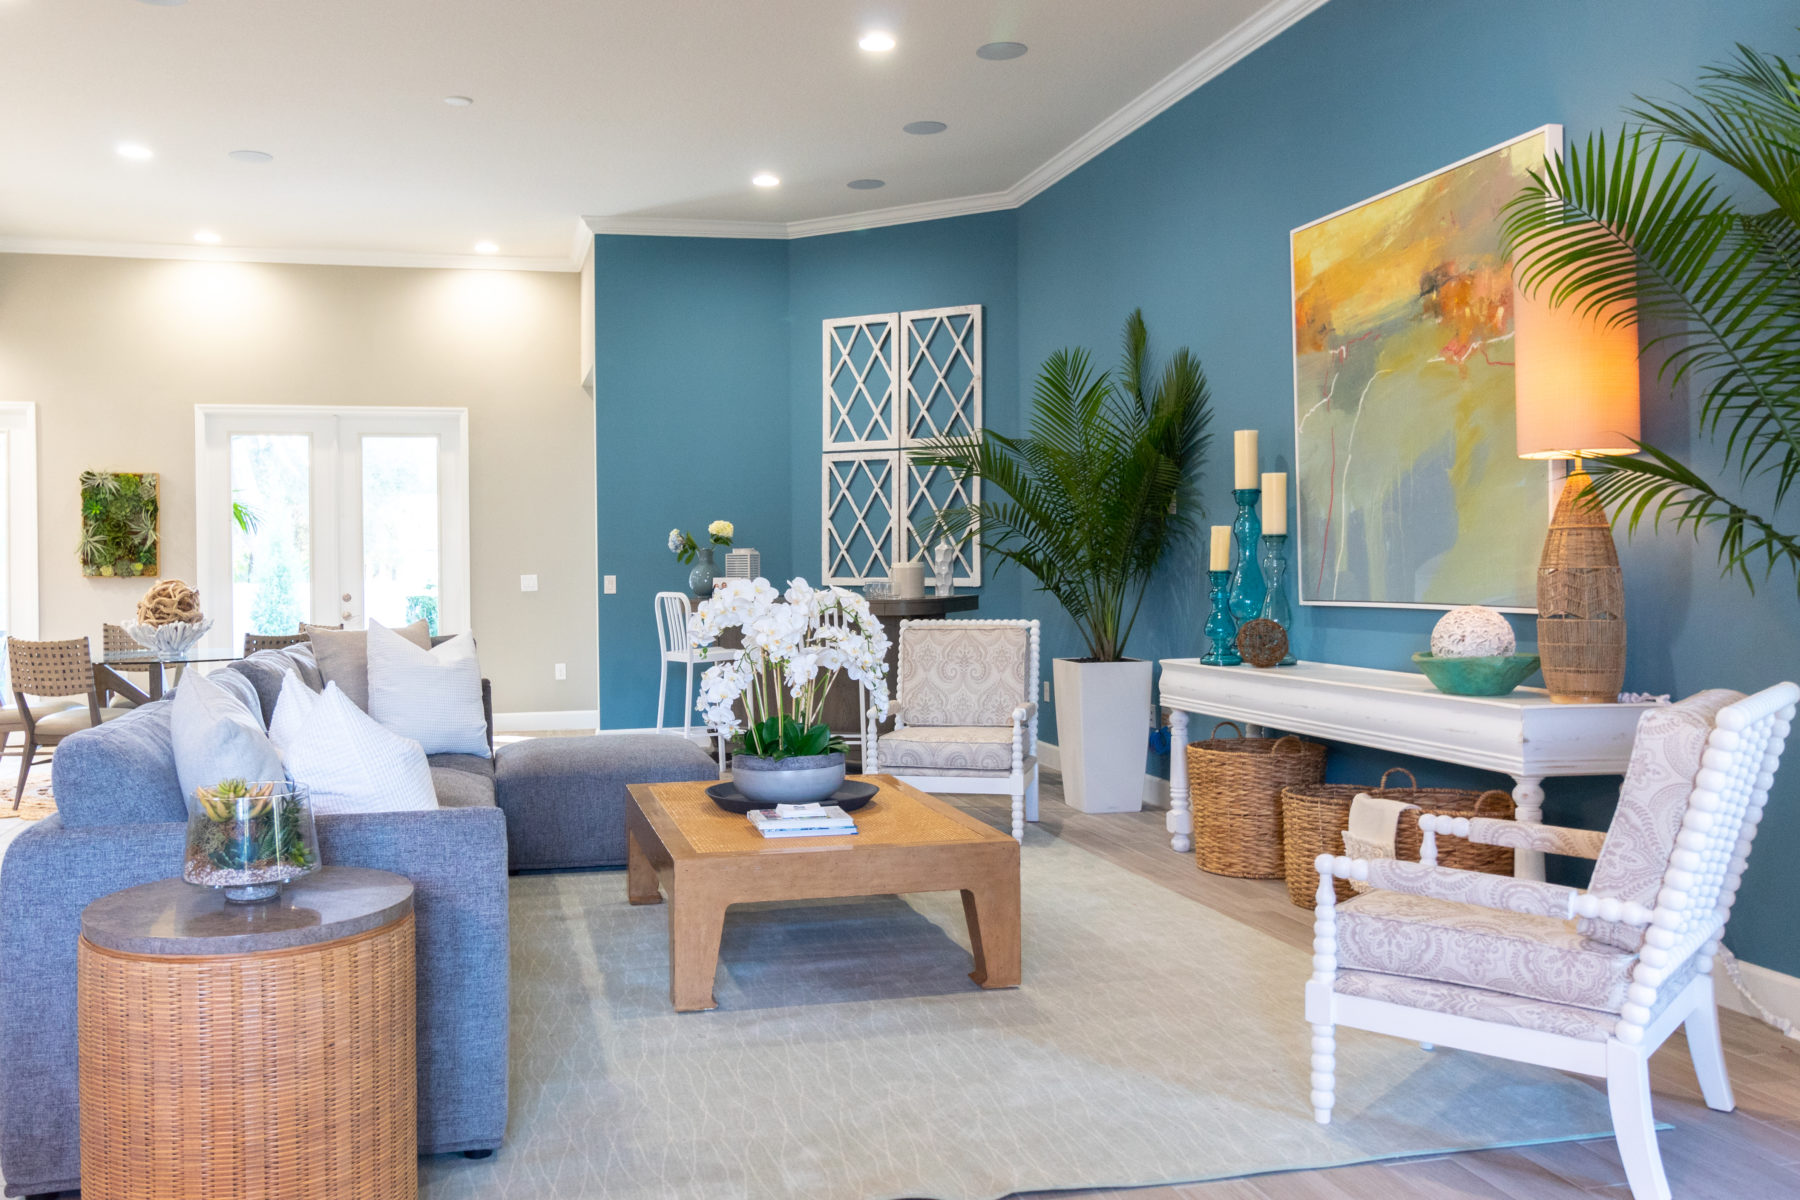 HGTV – Coastal home with bright twist debuts